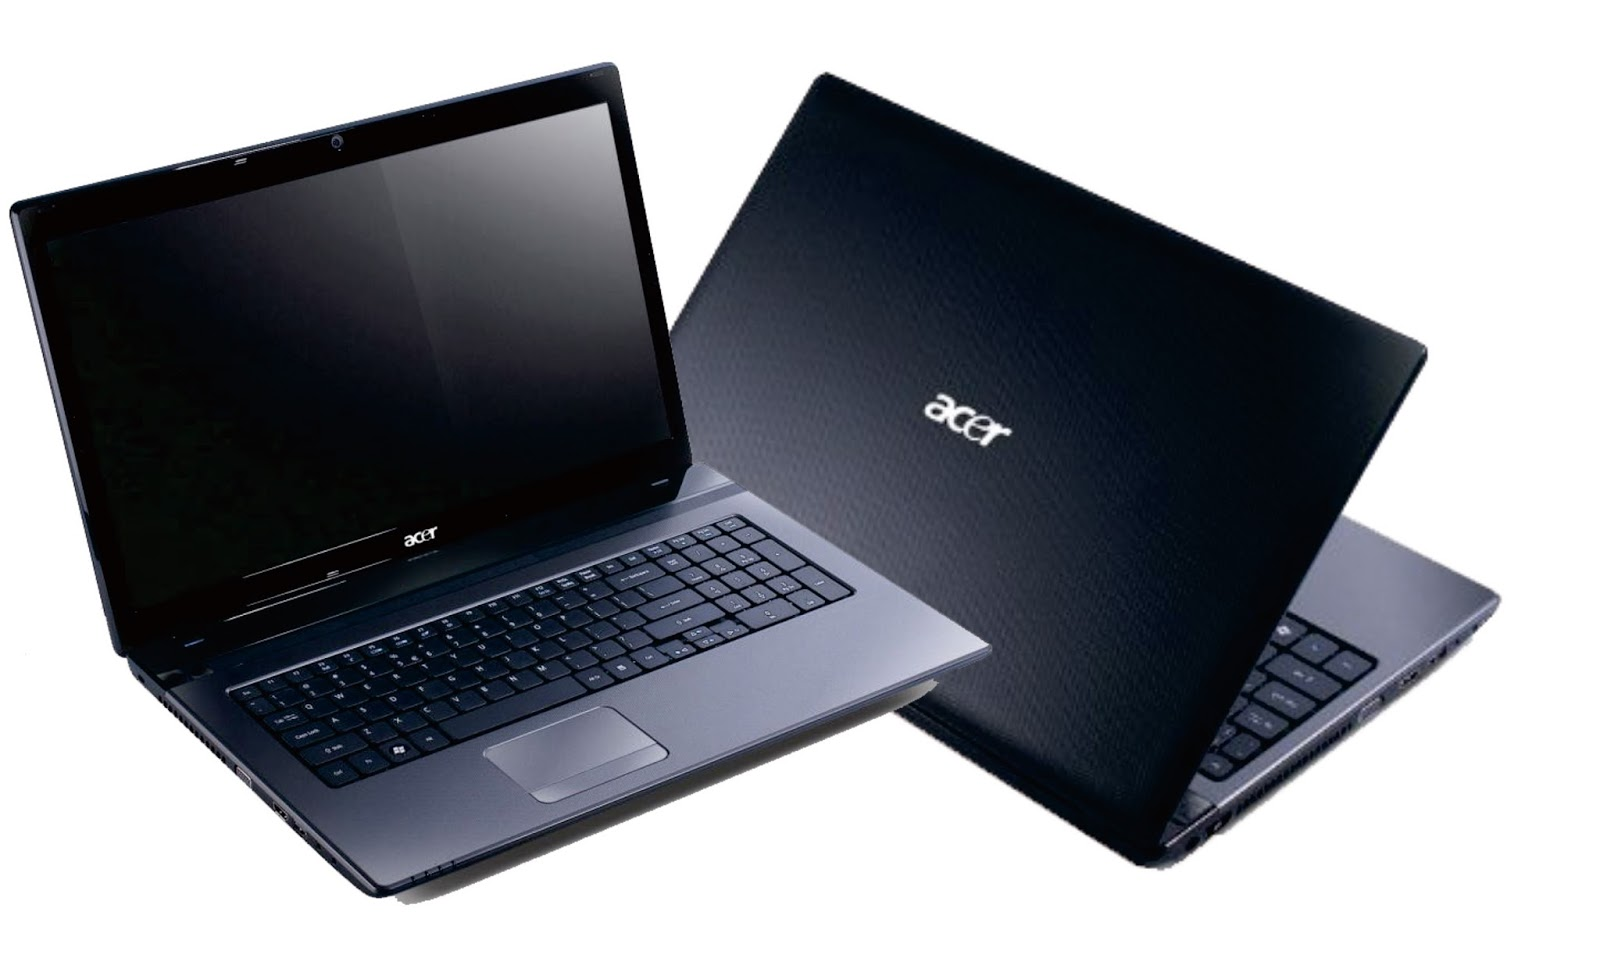 Acer Aspire 5750G Atheros WLAN Drivers for Windows Download